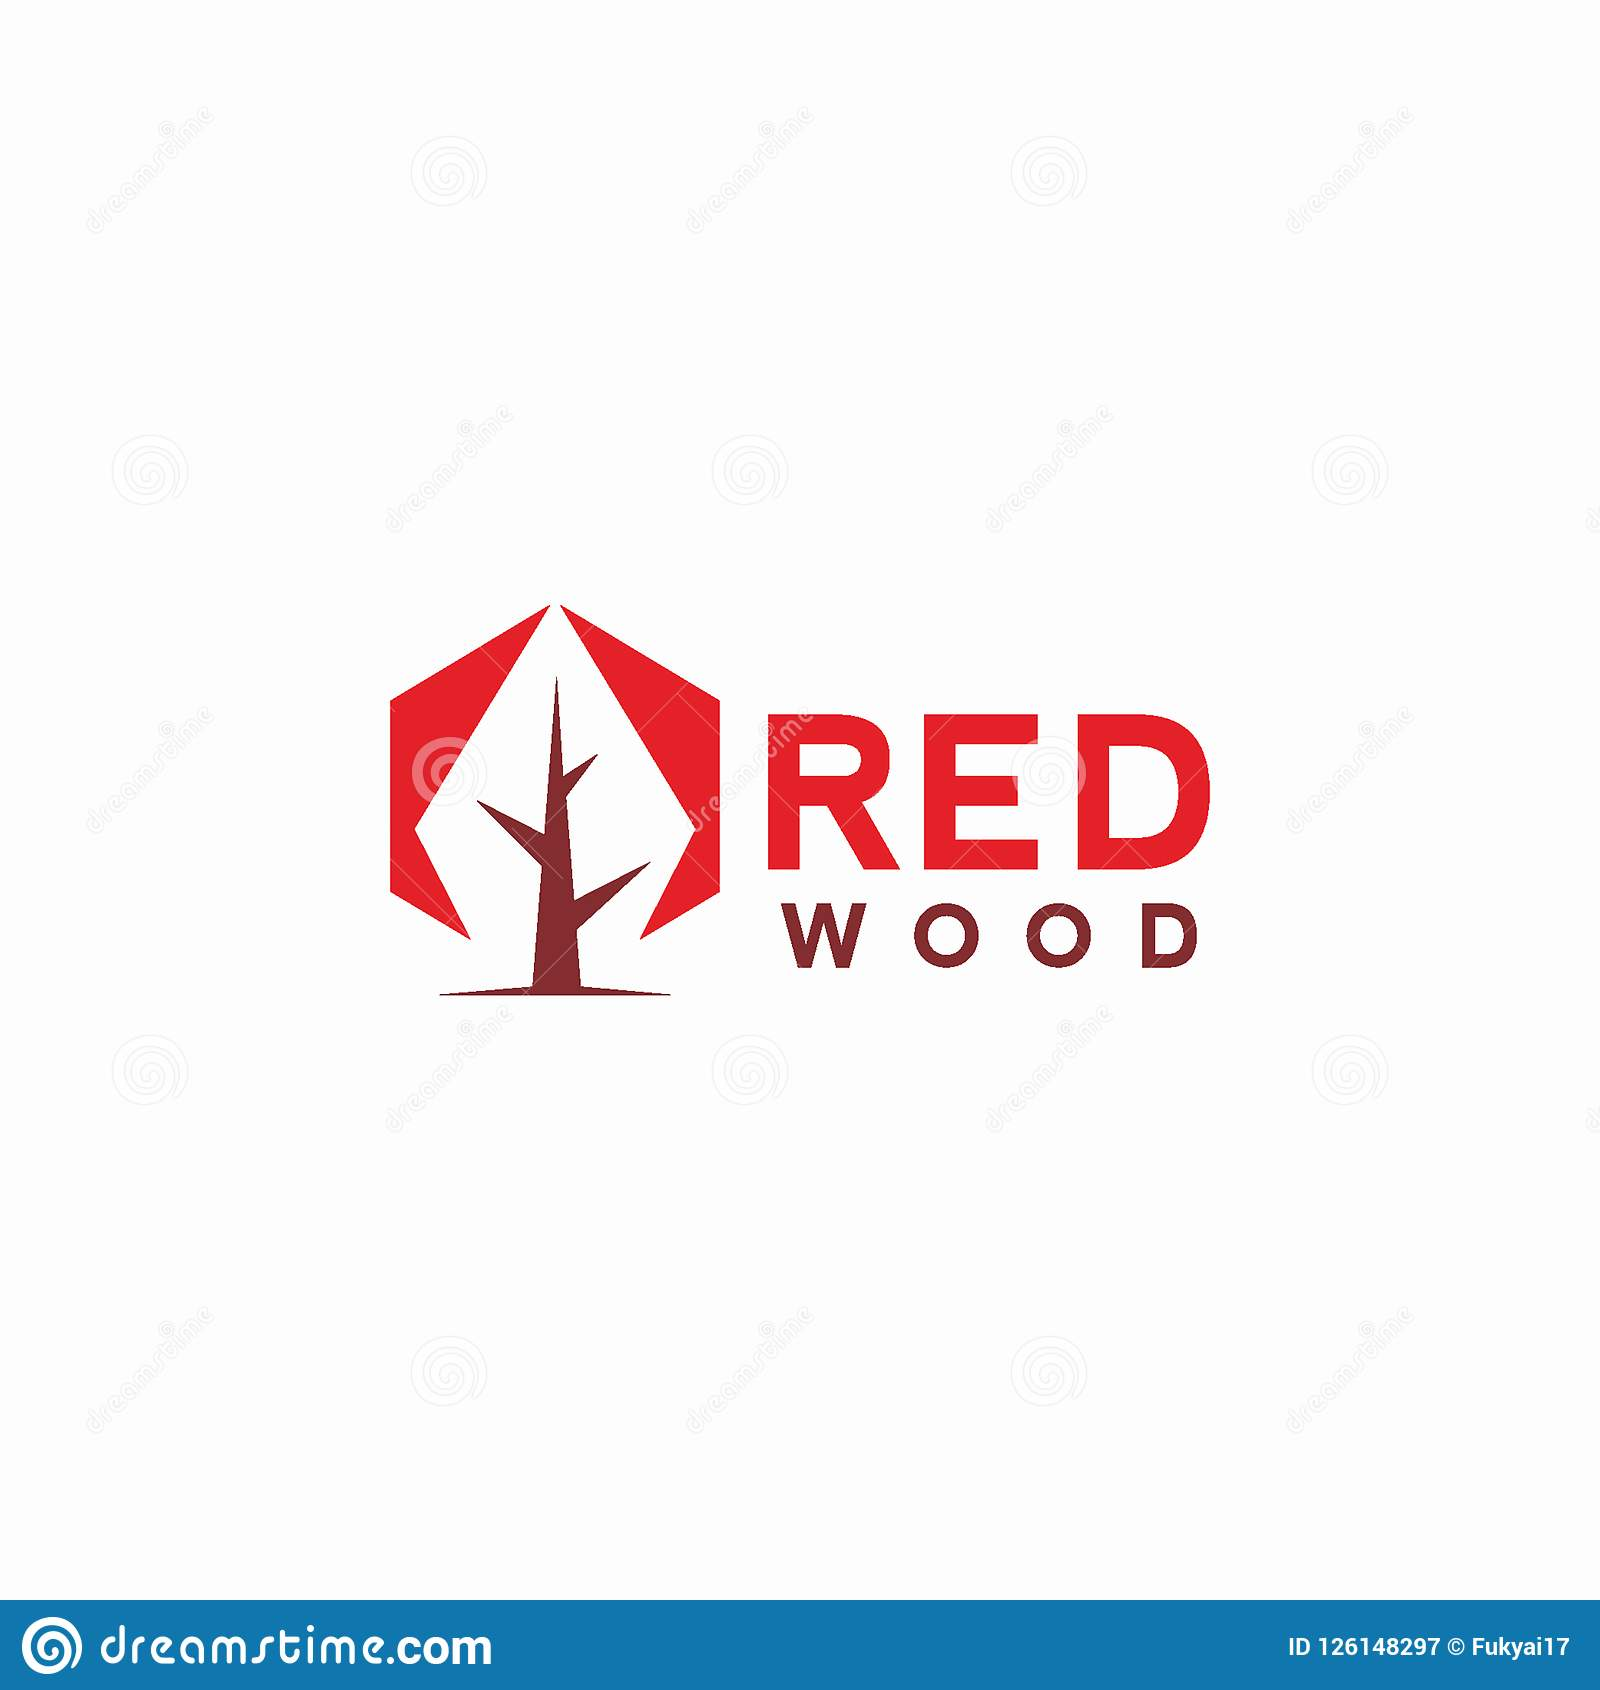 Abstract Red Wood Logo Design Concept Stock Vector Illustration of